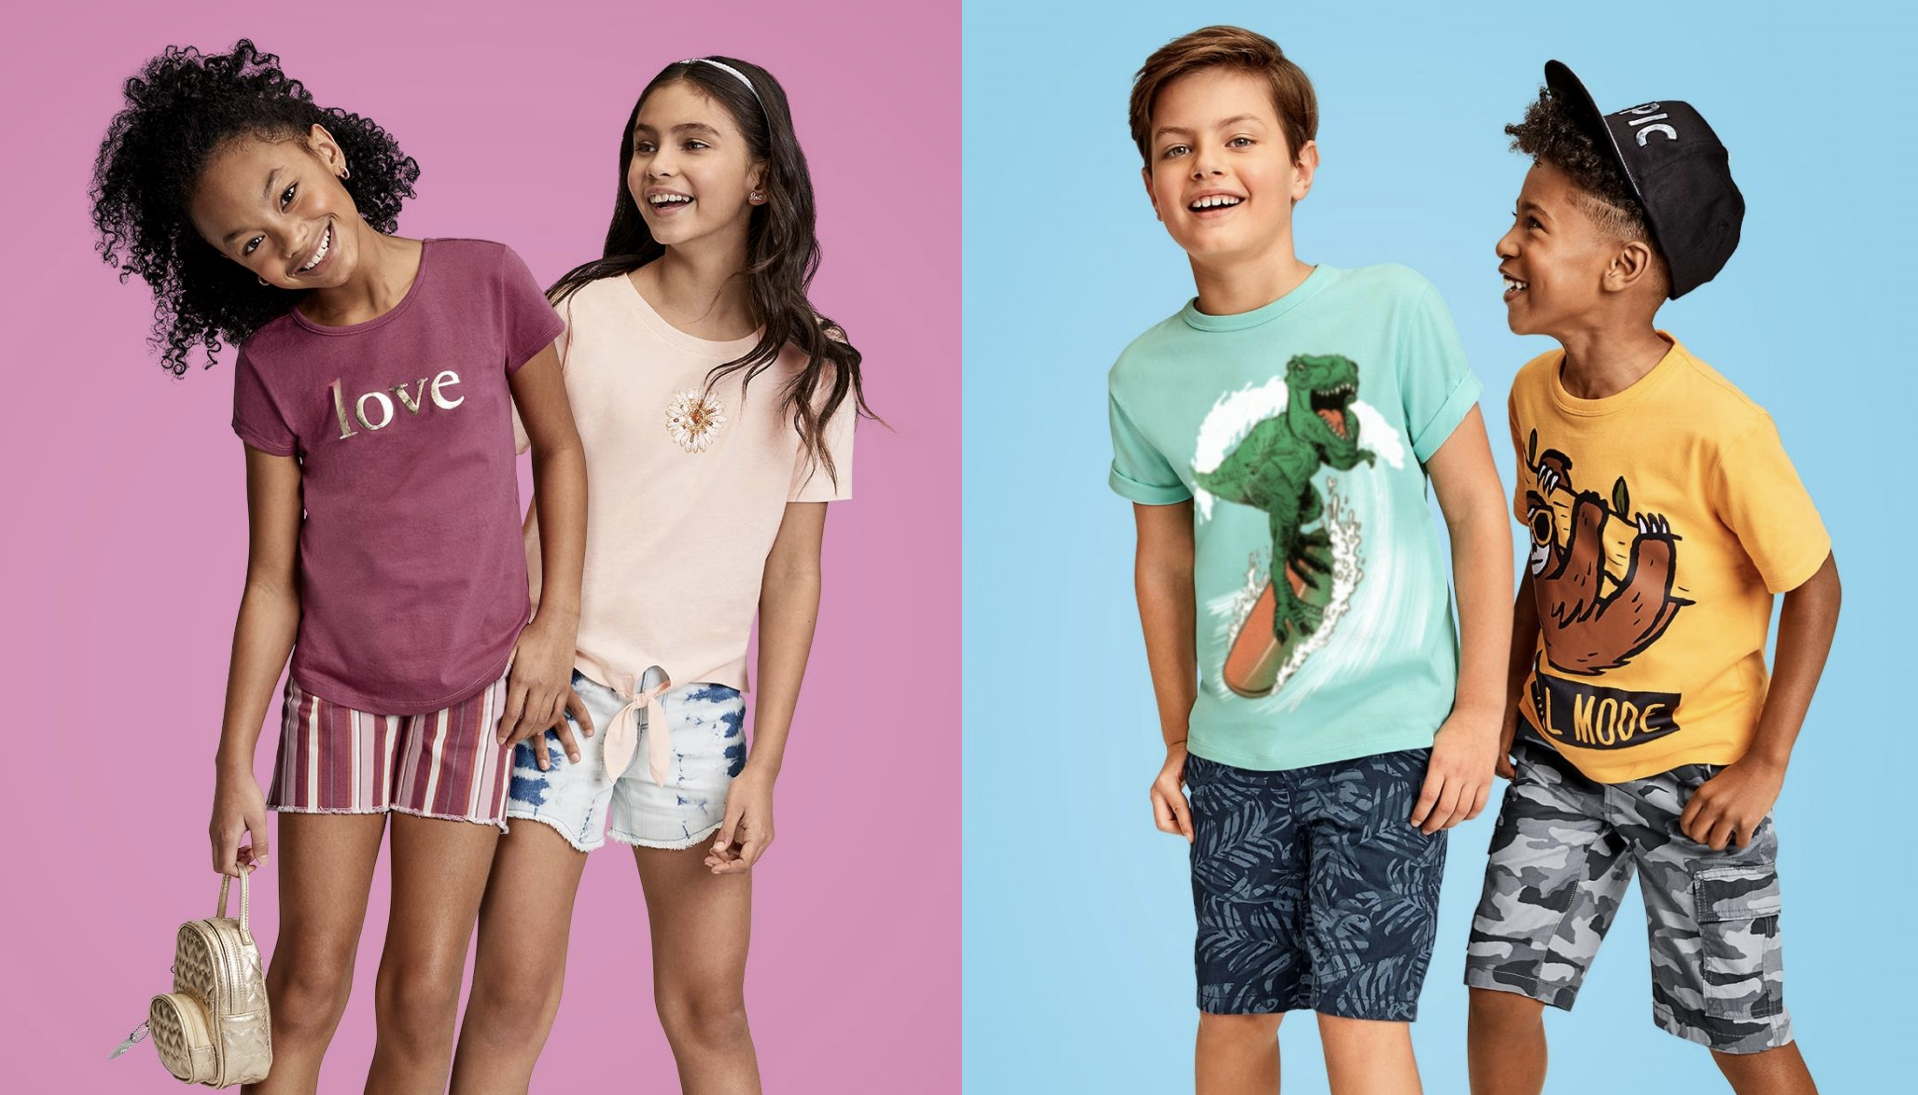 CEO Jane Elfers said the retailer is on track for back-to-school deliveries, although summer product is seeing two-to-four-week disruption.